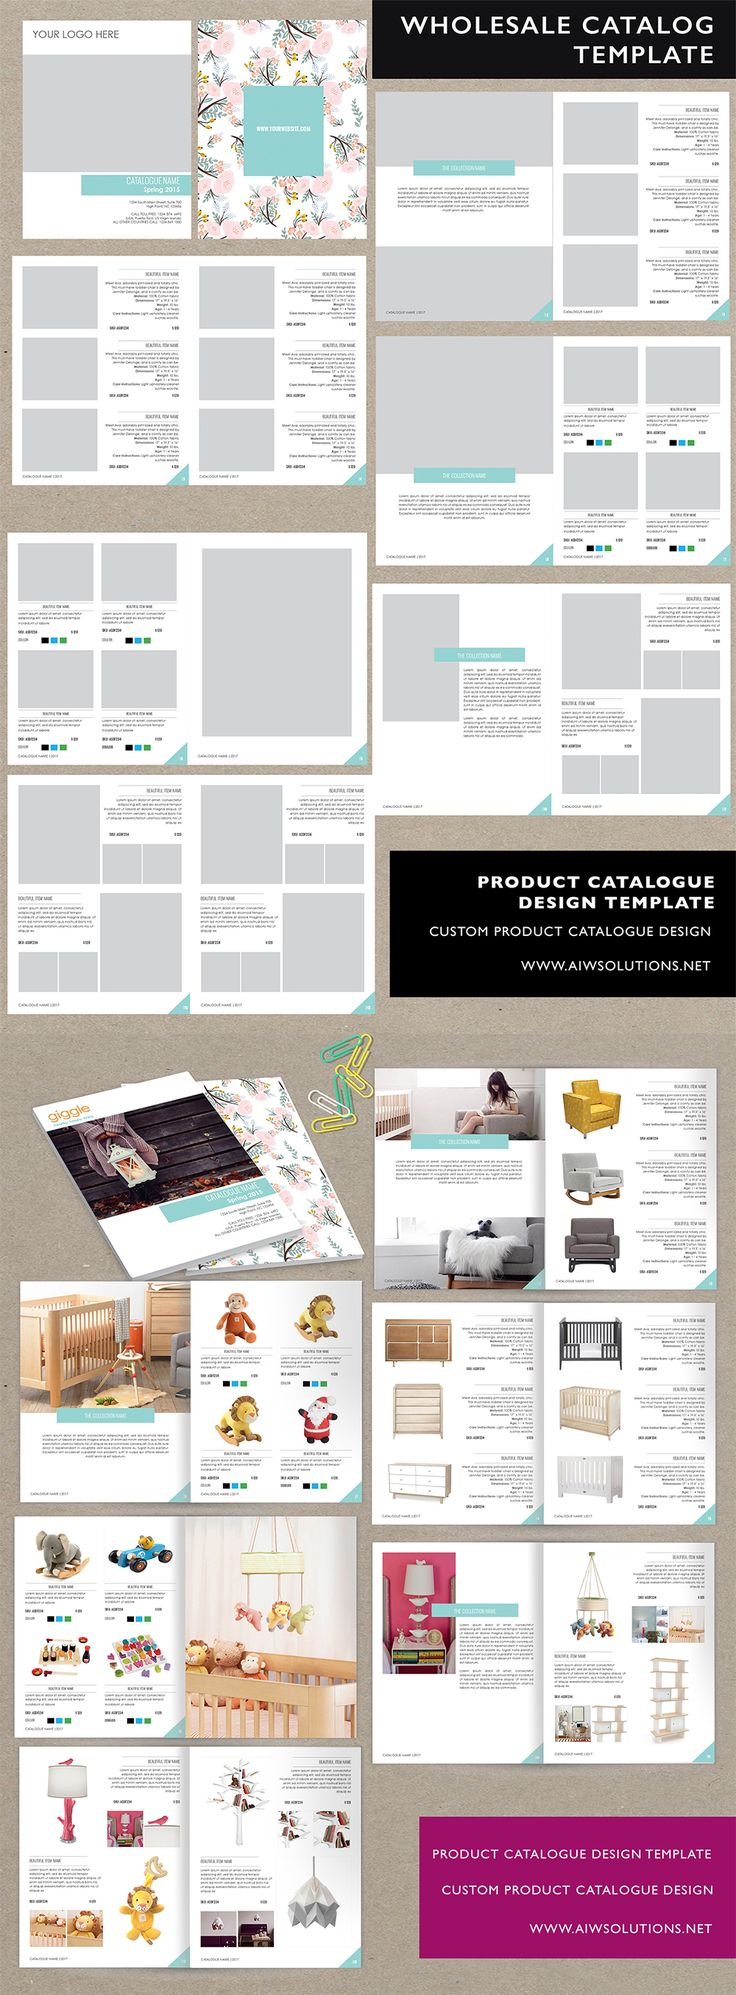 indesign template use for new document